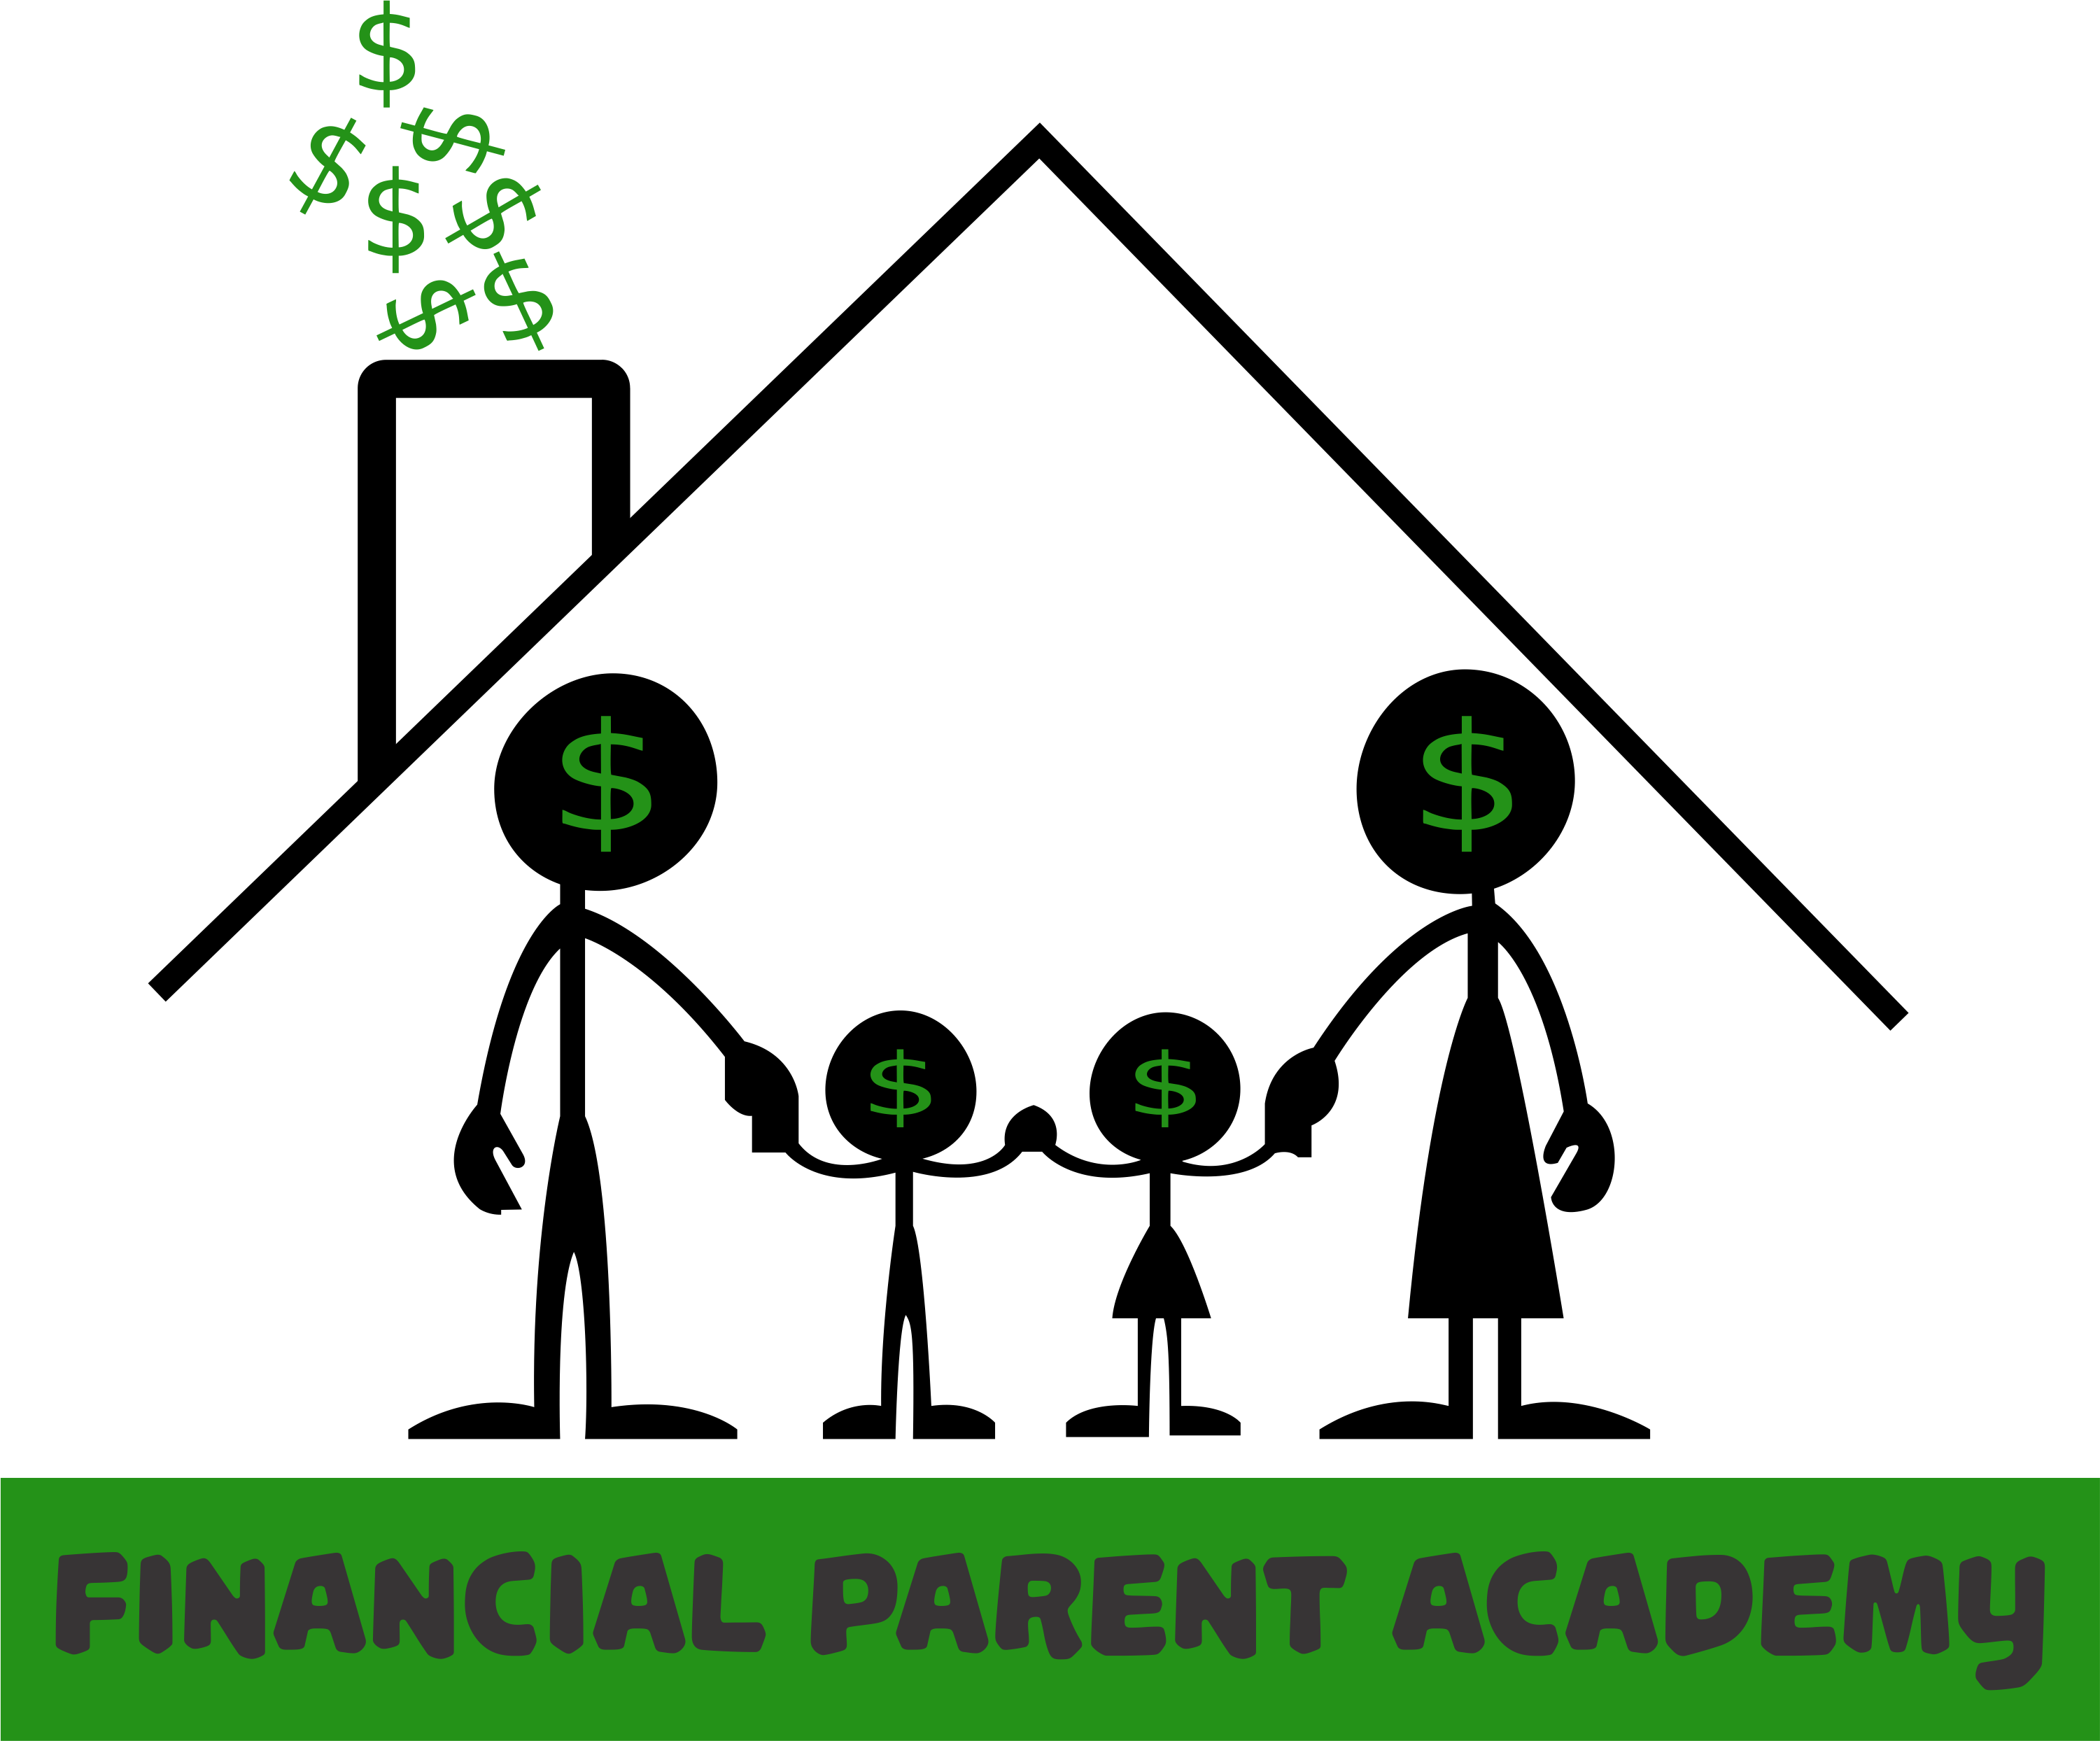 Financial Parent Academy - Black Owned